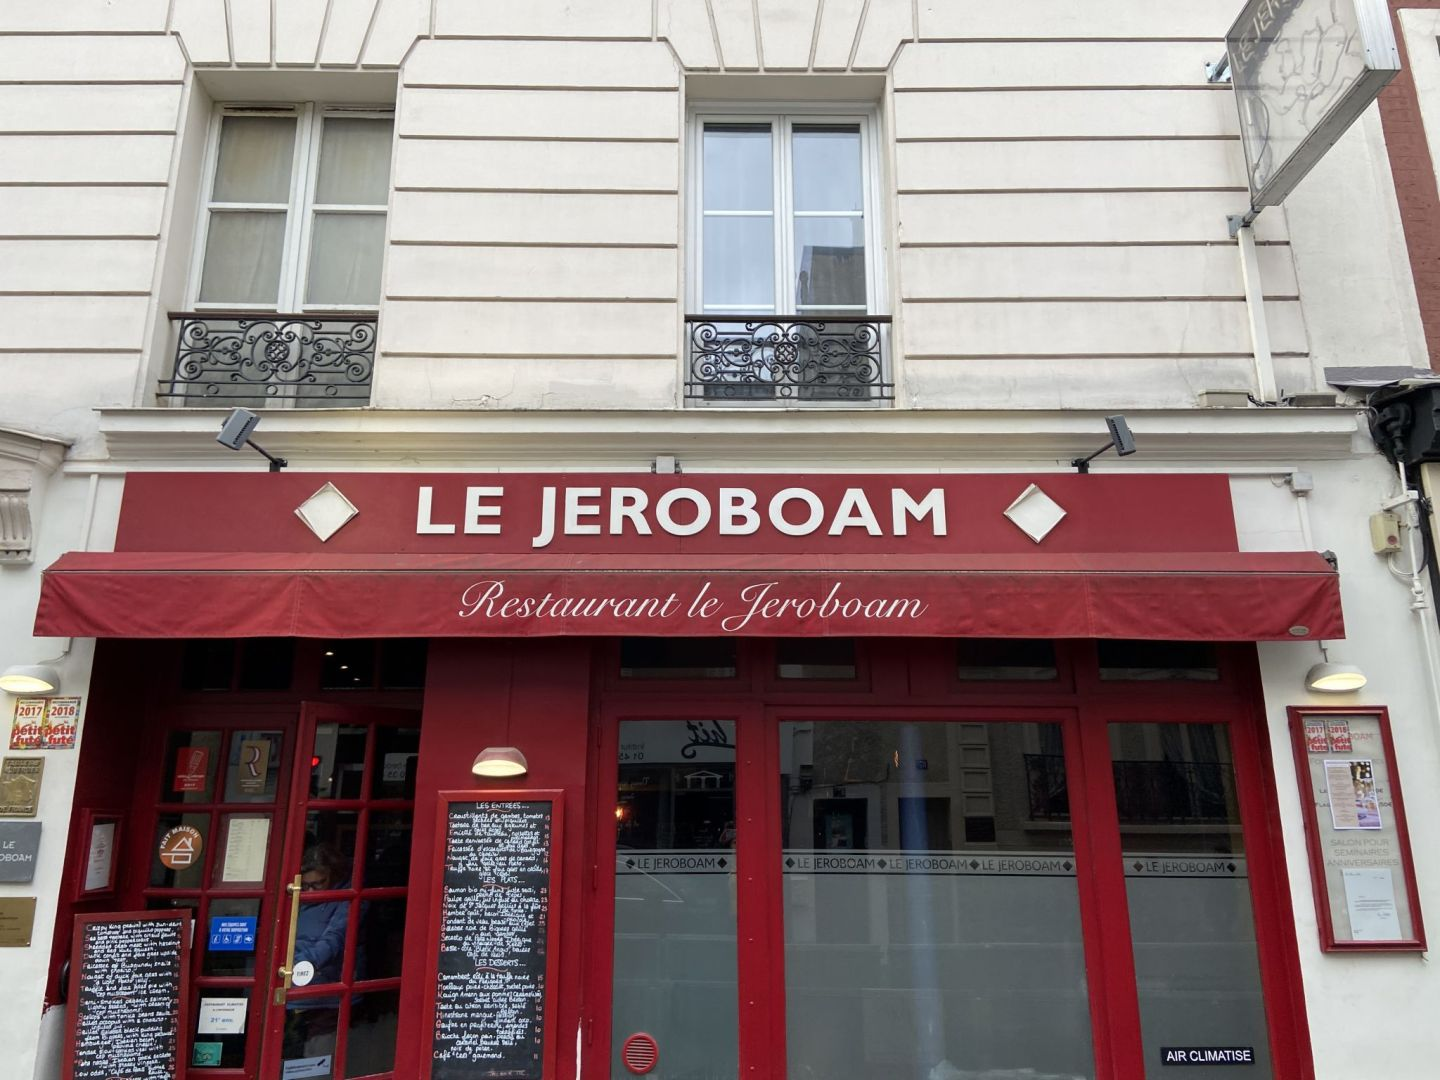 Restaurant review: Le Jeroboam